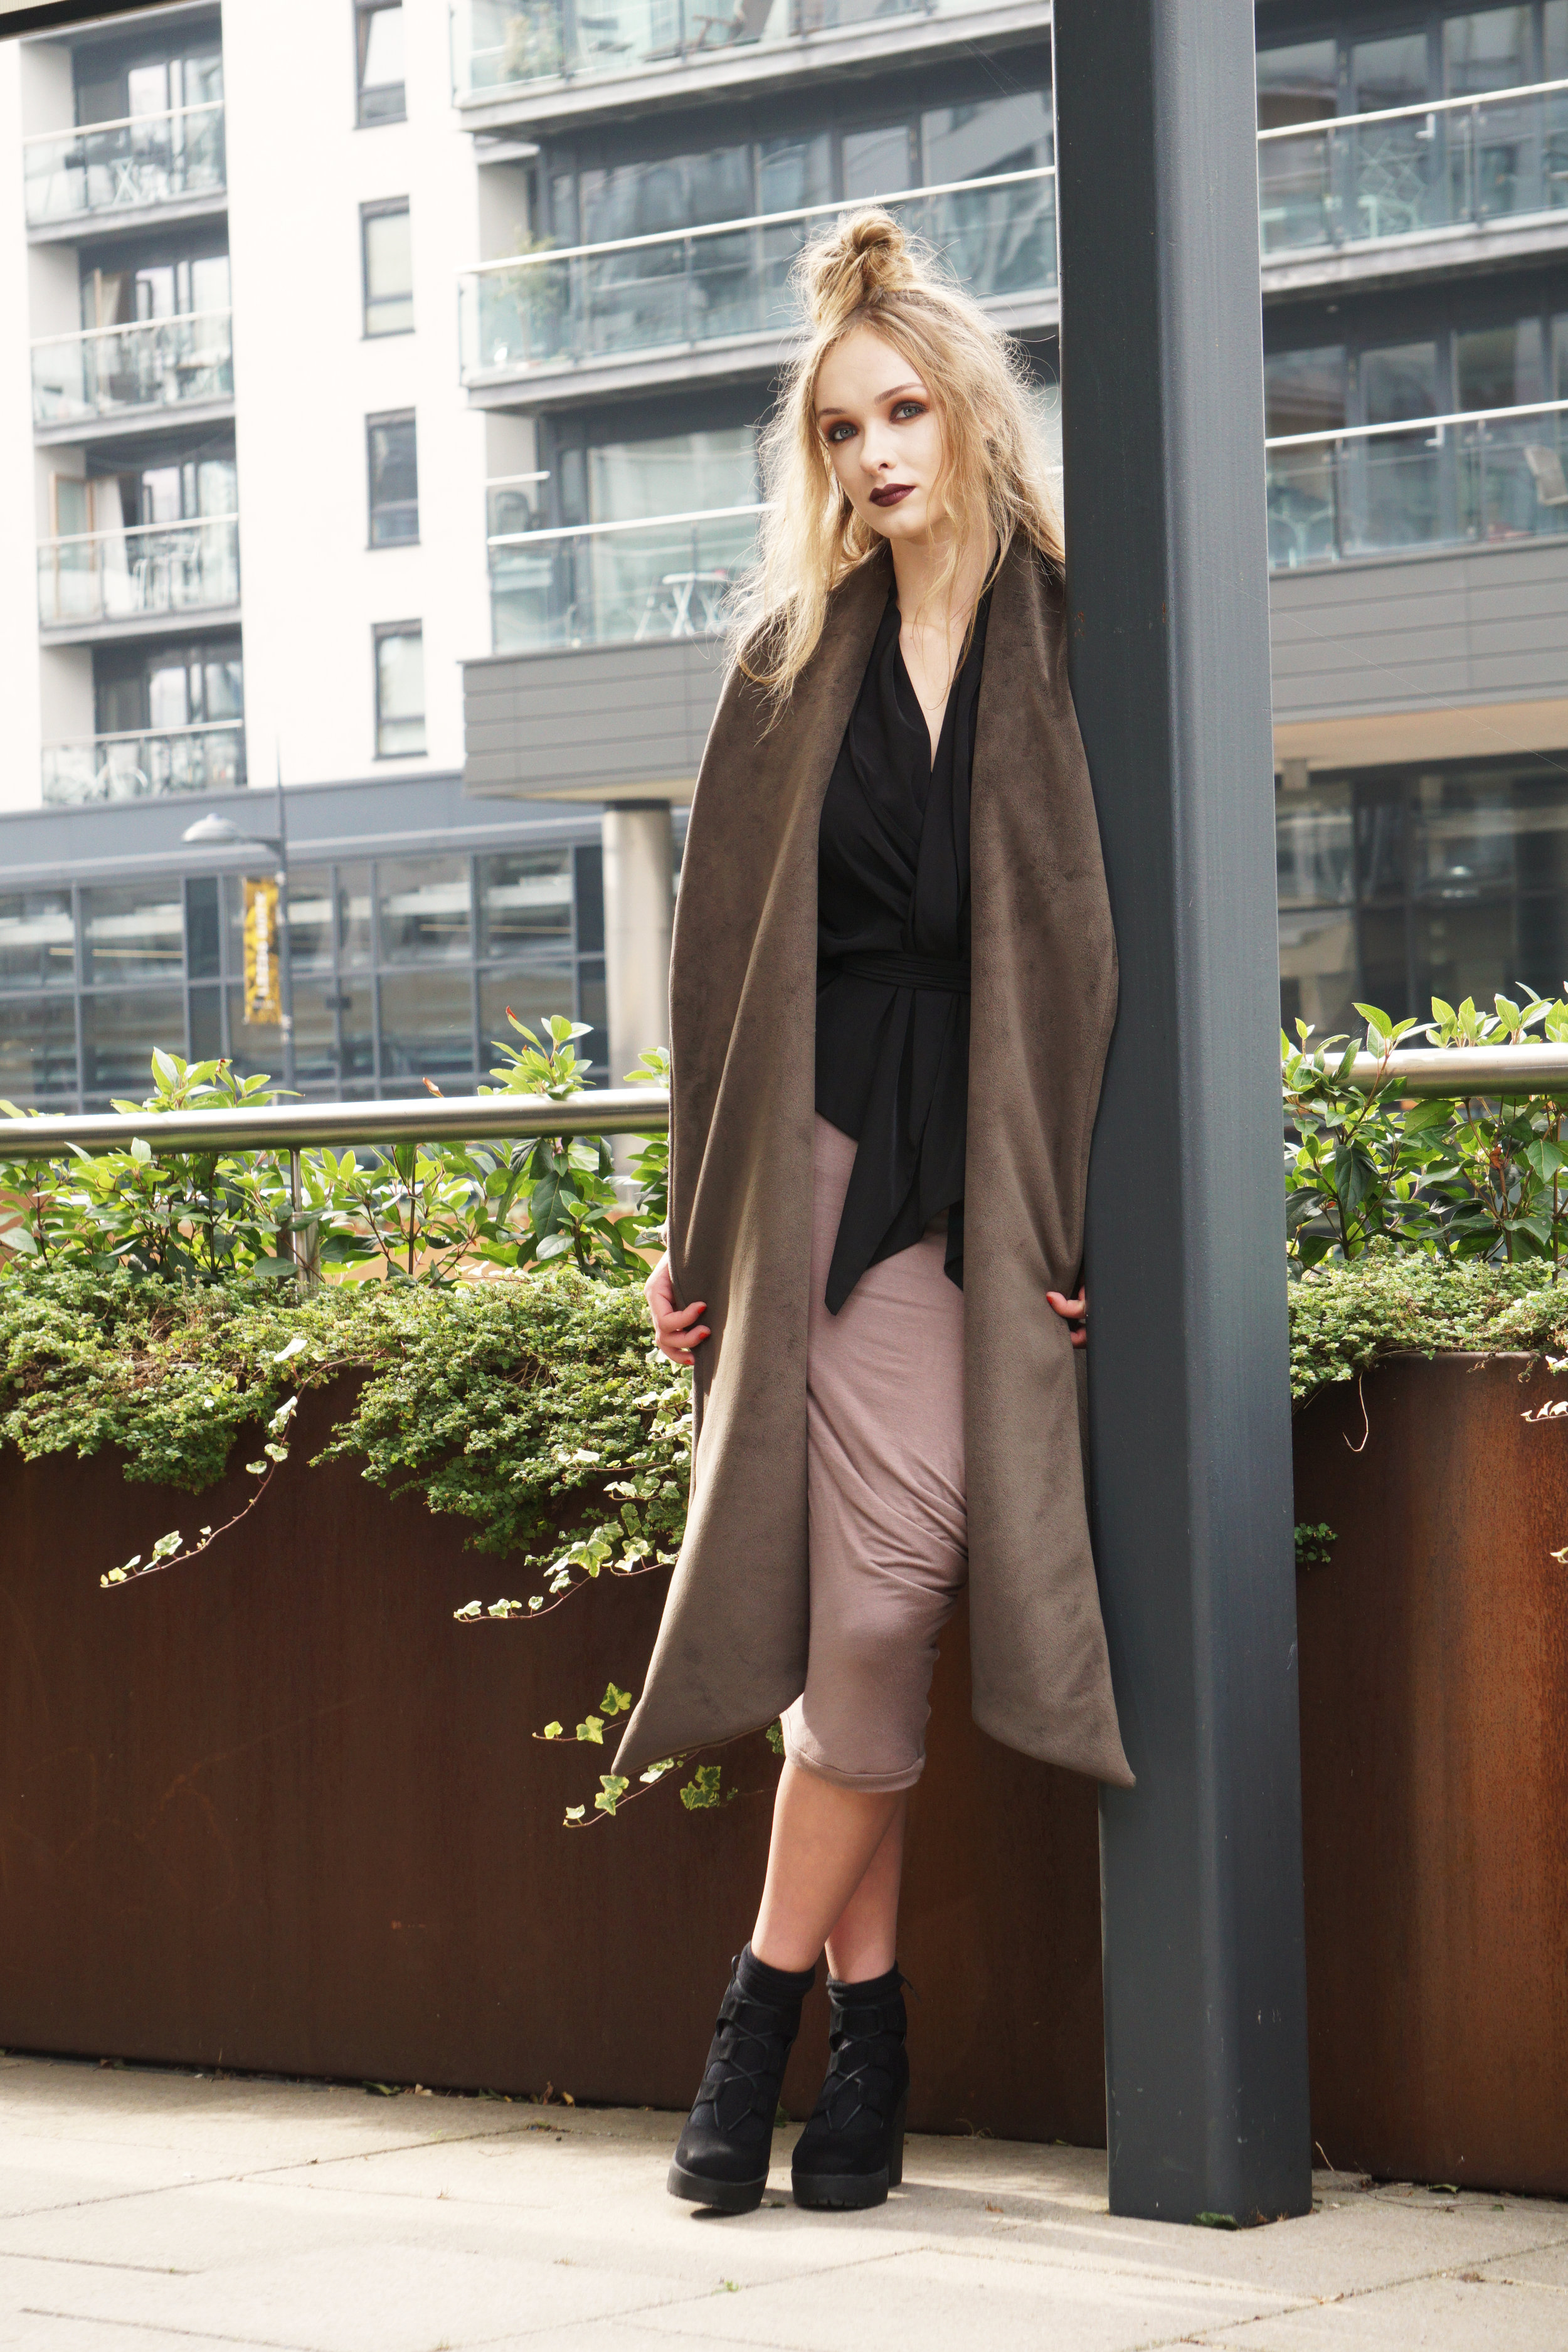 zaramia-ava-zaramiaava-leeds-fashion-designer-ethical-sustainable-taupe-versatile-drape-yoko-skirt-mioka-black-mai-coat-leeds-dock-grunge-9